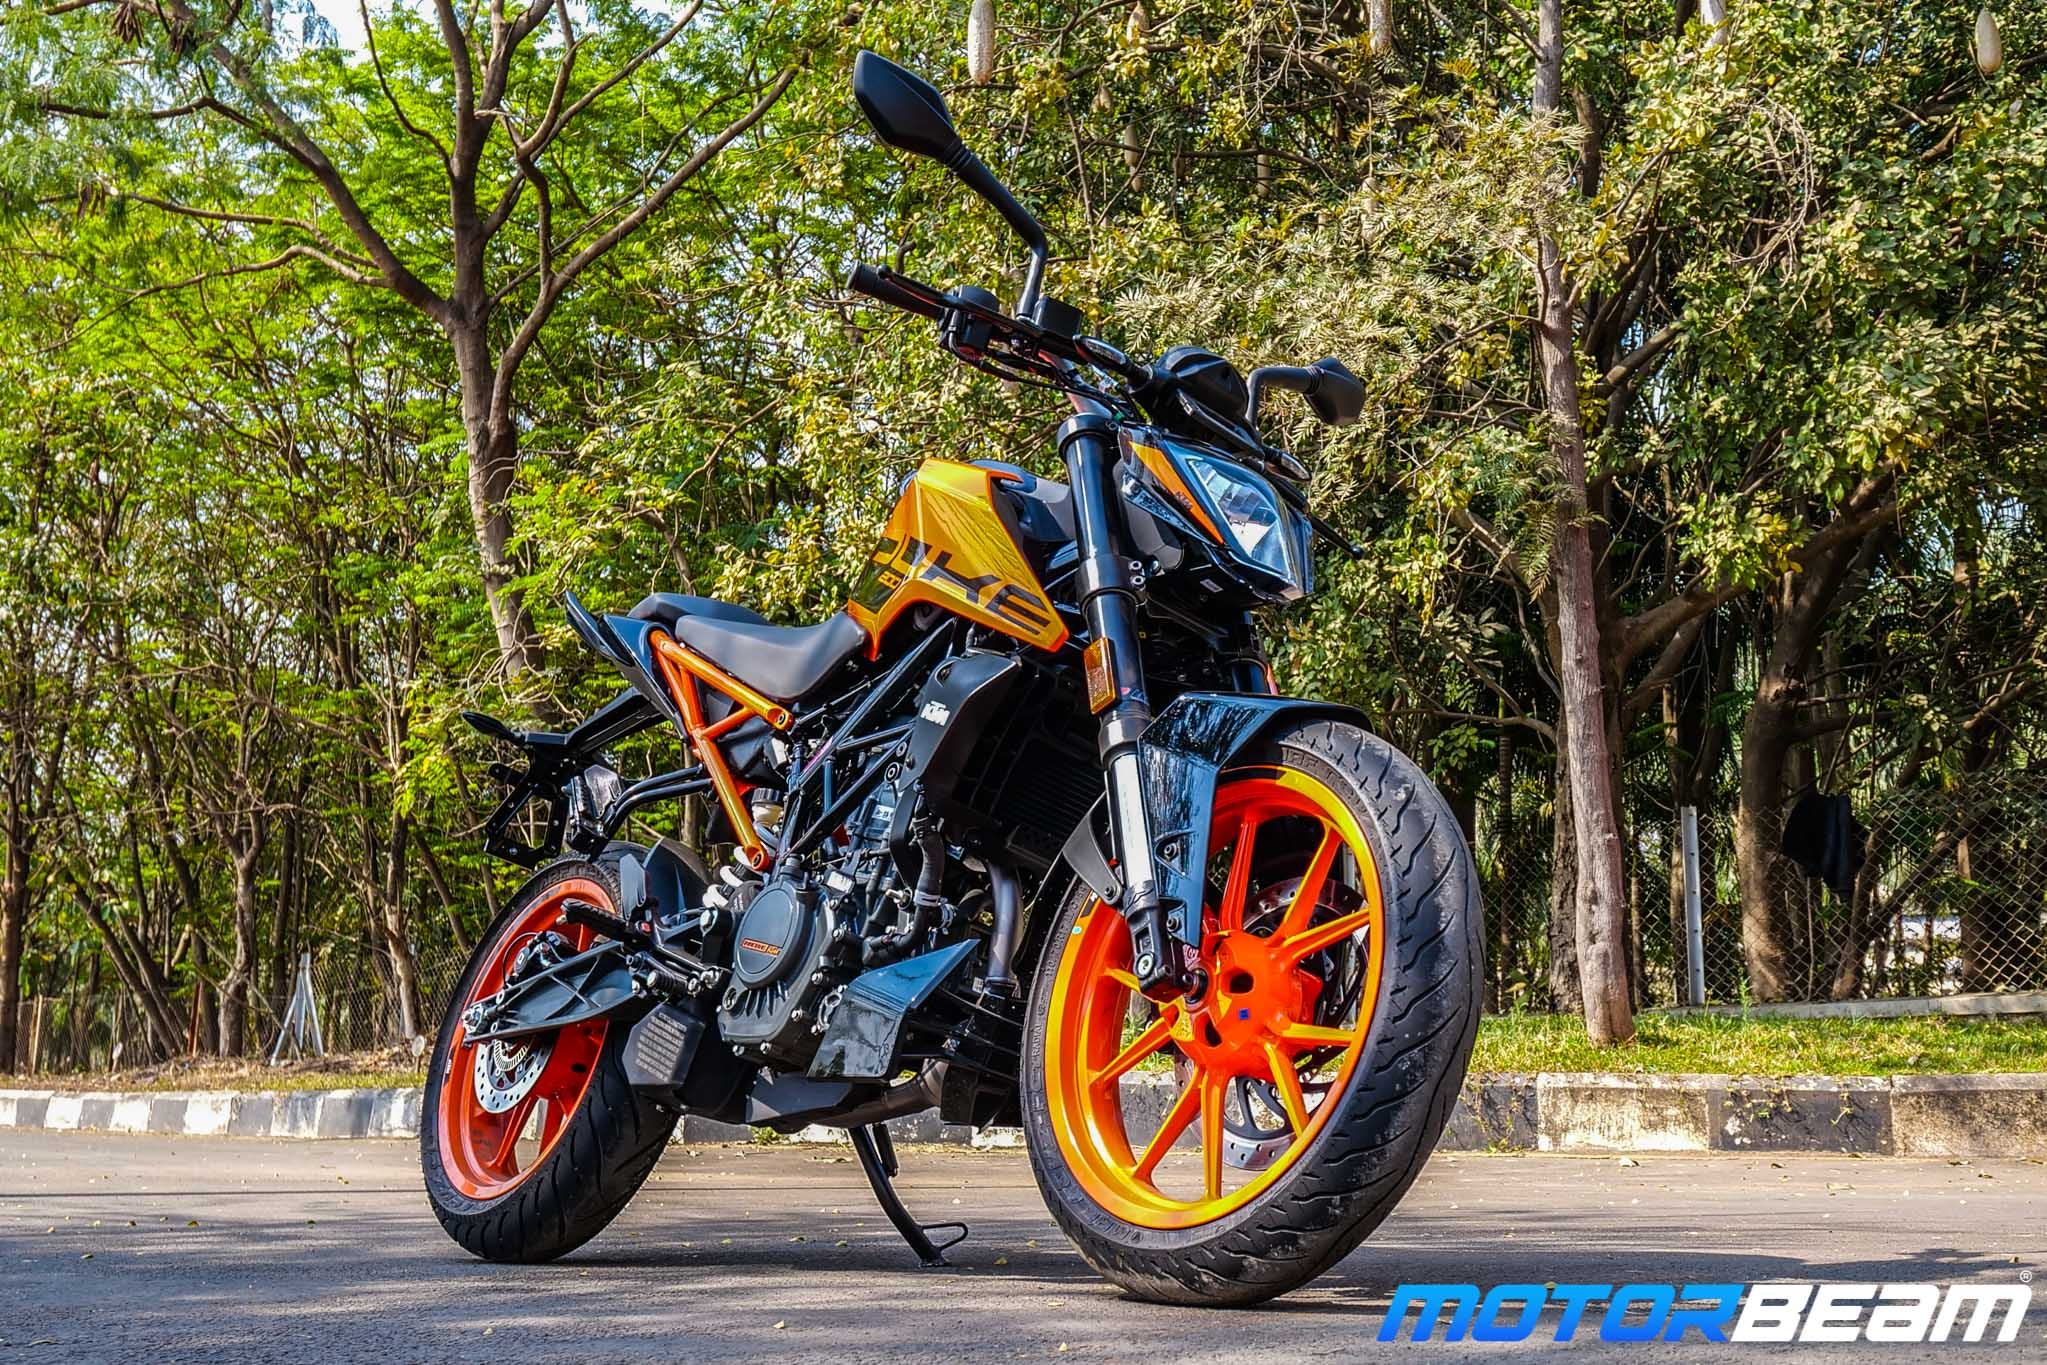 2020 KTM Duke 200 BS6 Test Ride Review